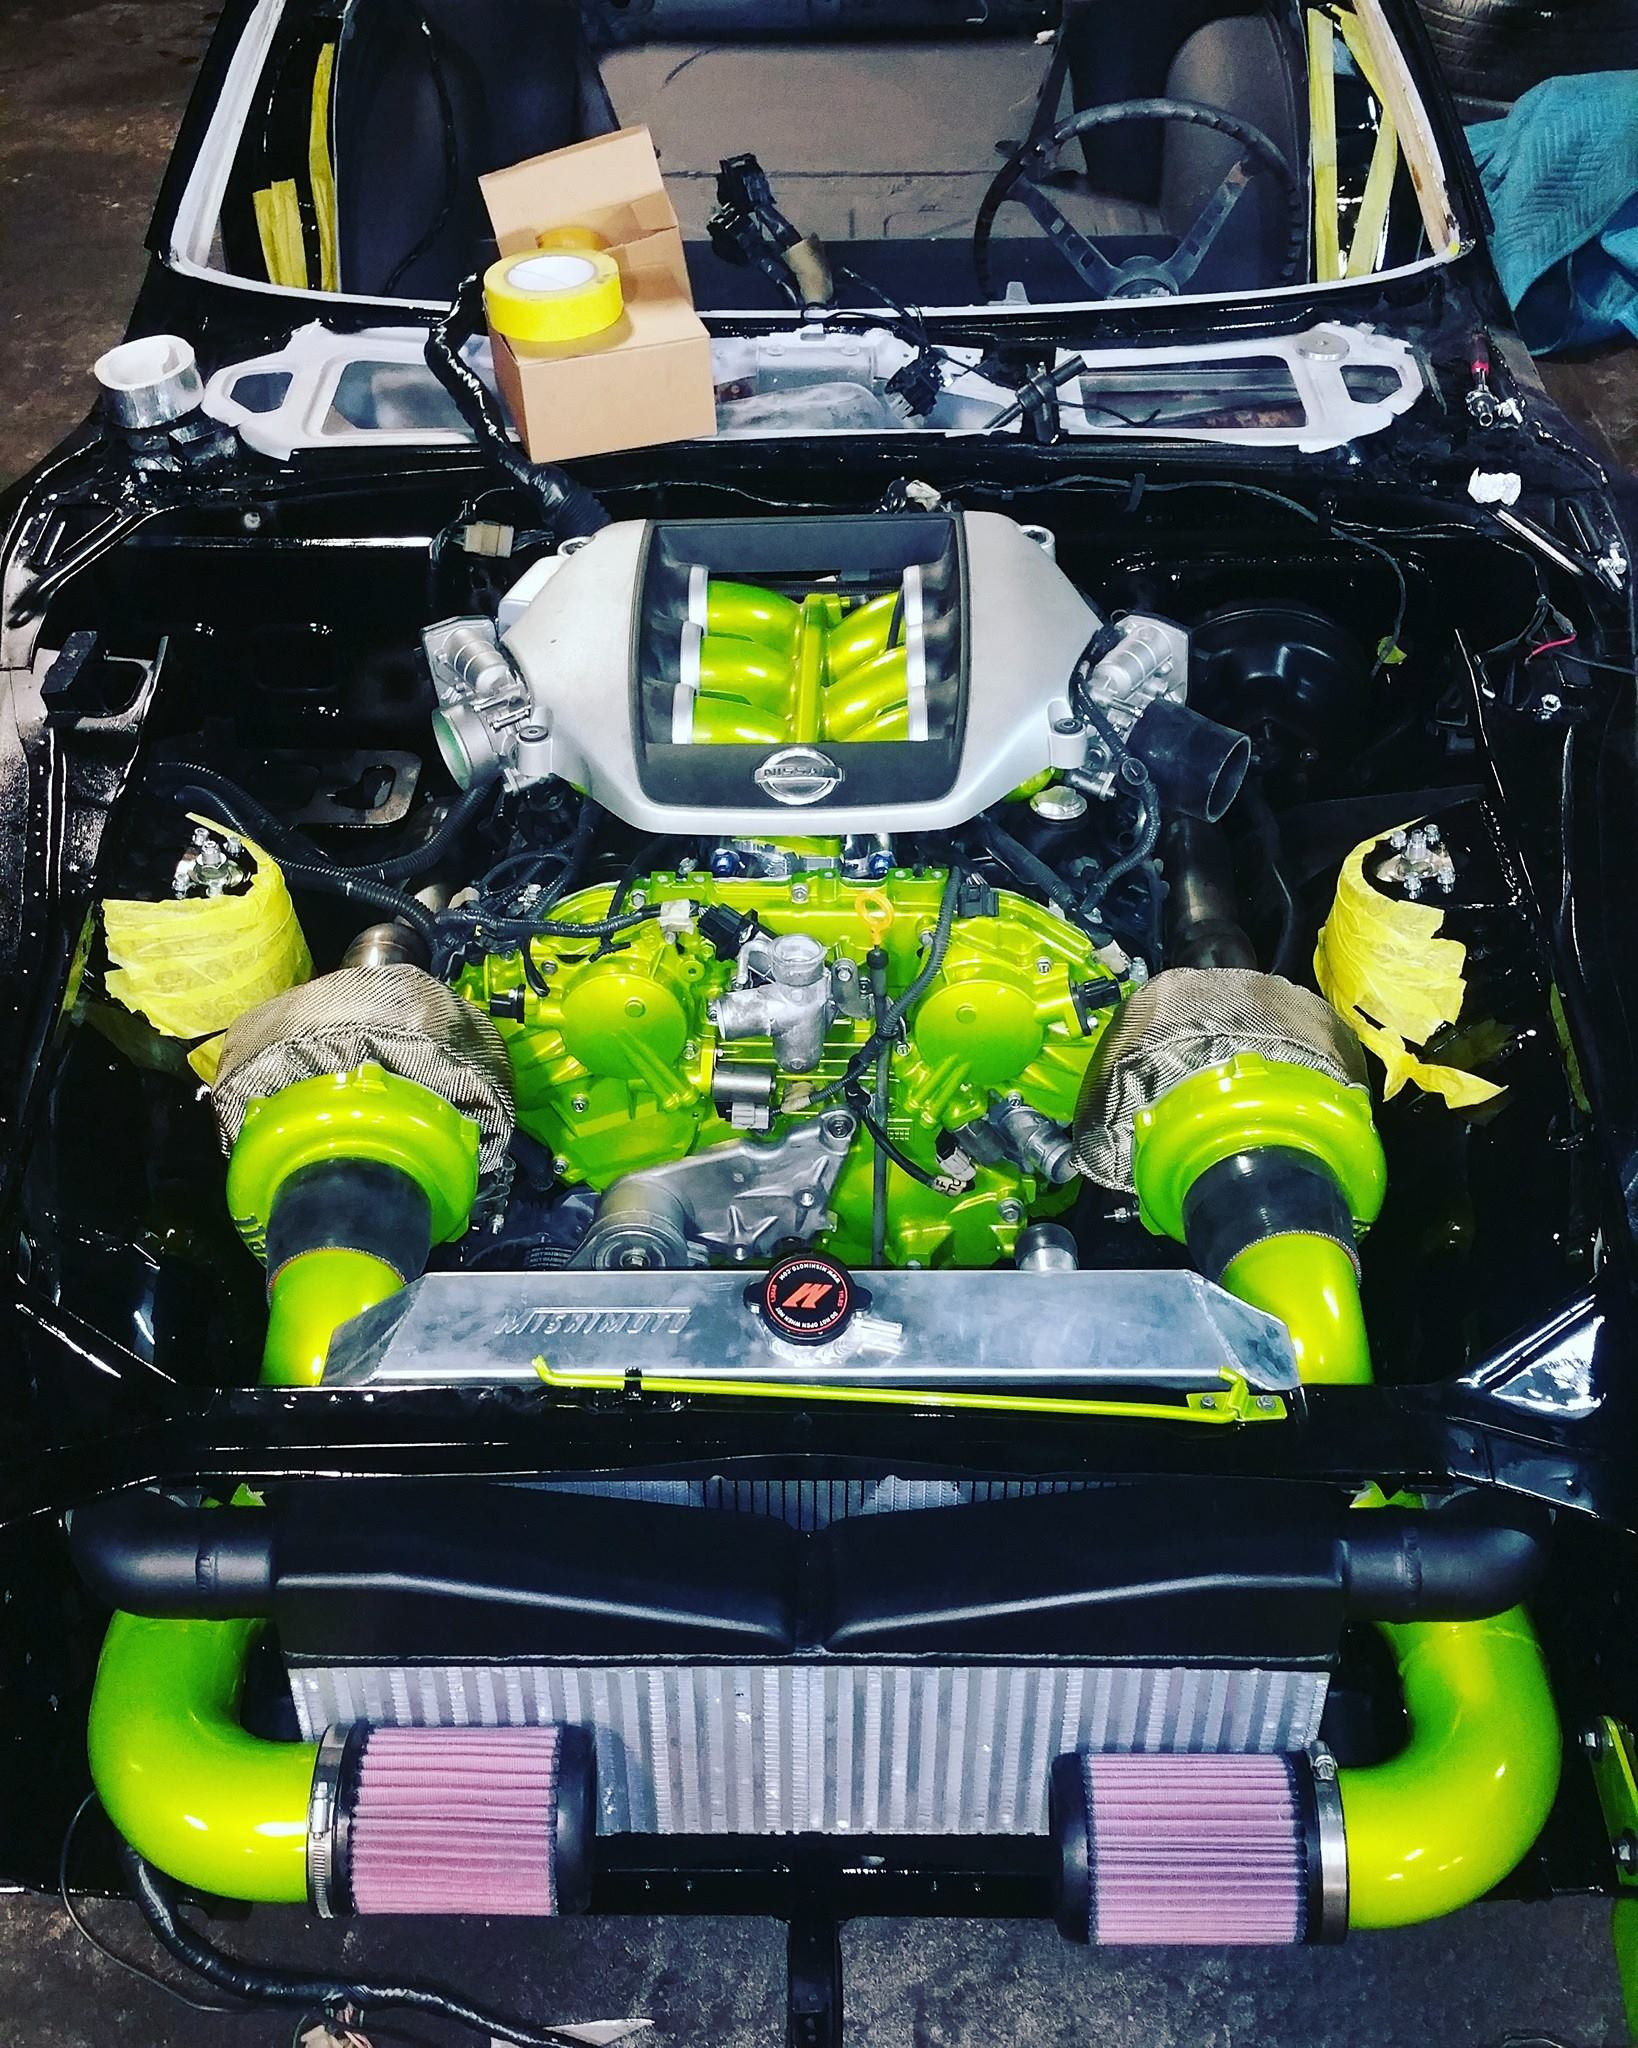 1973 Datsun 240z With A Twin Turbo Vq37 V6 Engine Swap Depot L24 Diagram Source Fever Racing Fb Page And Twinturbo